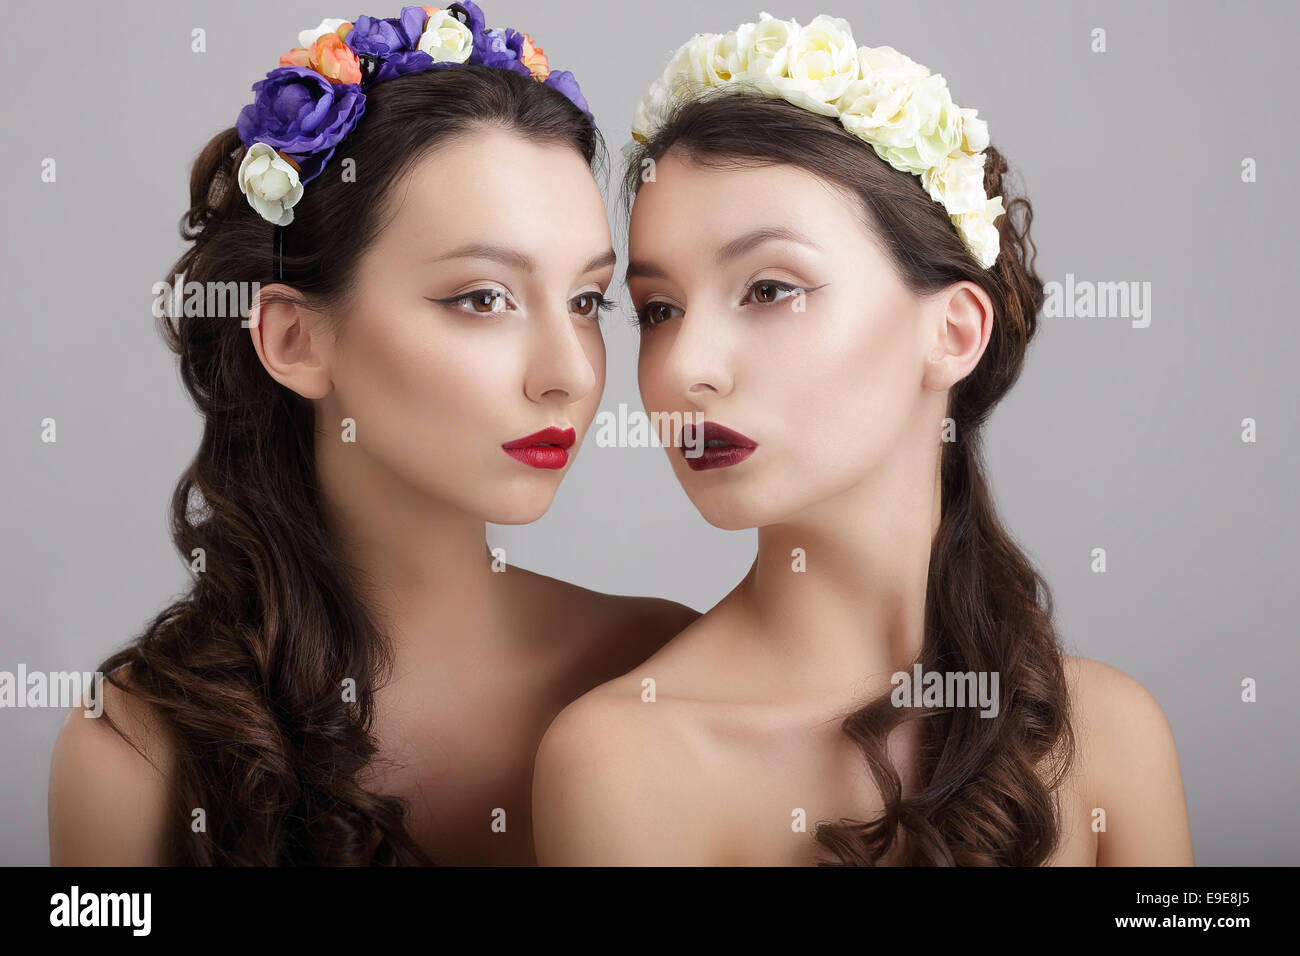 Inspiration.Two Styled Females with Wreaths of Flowers - Stock Image